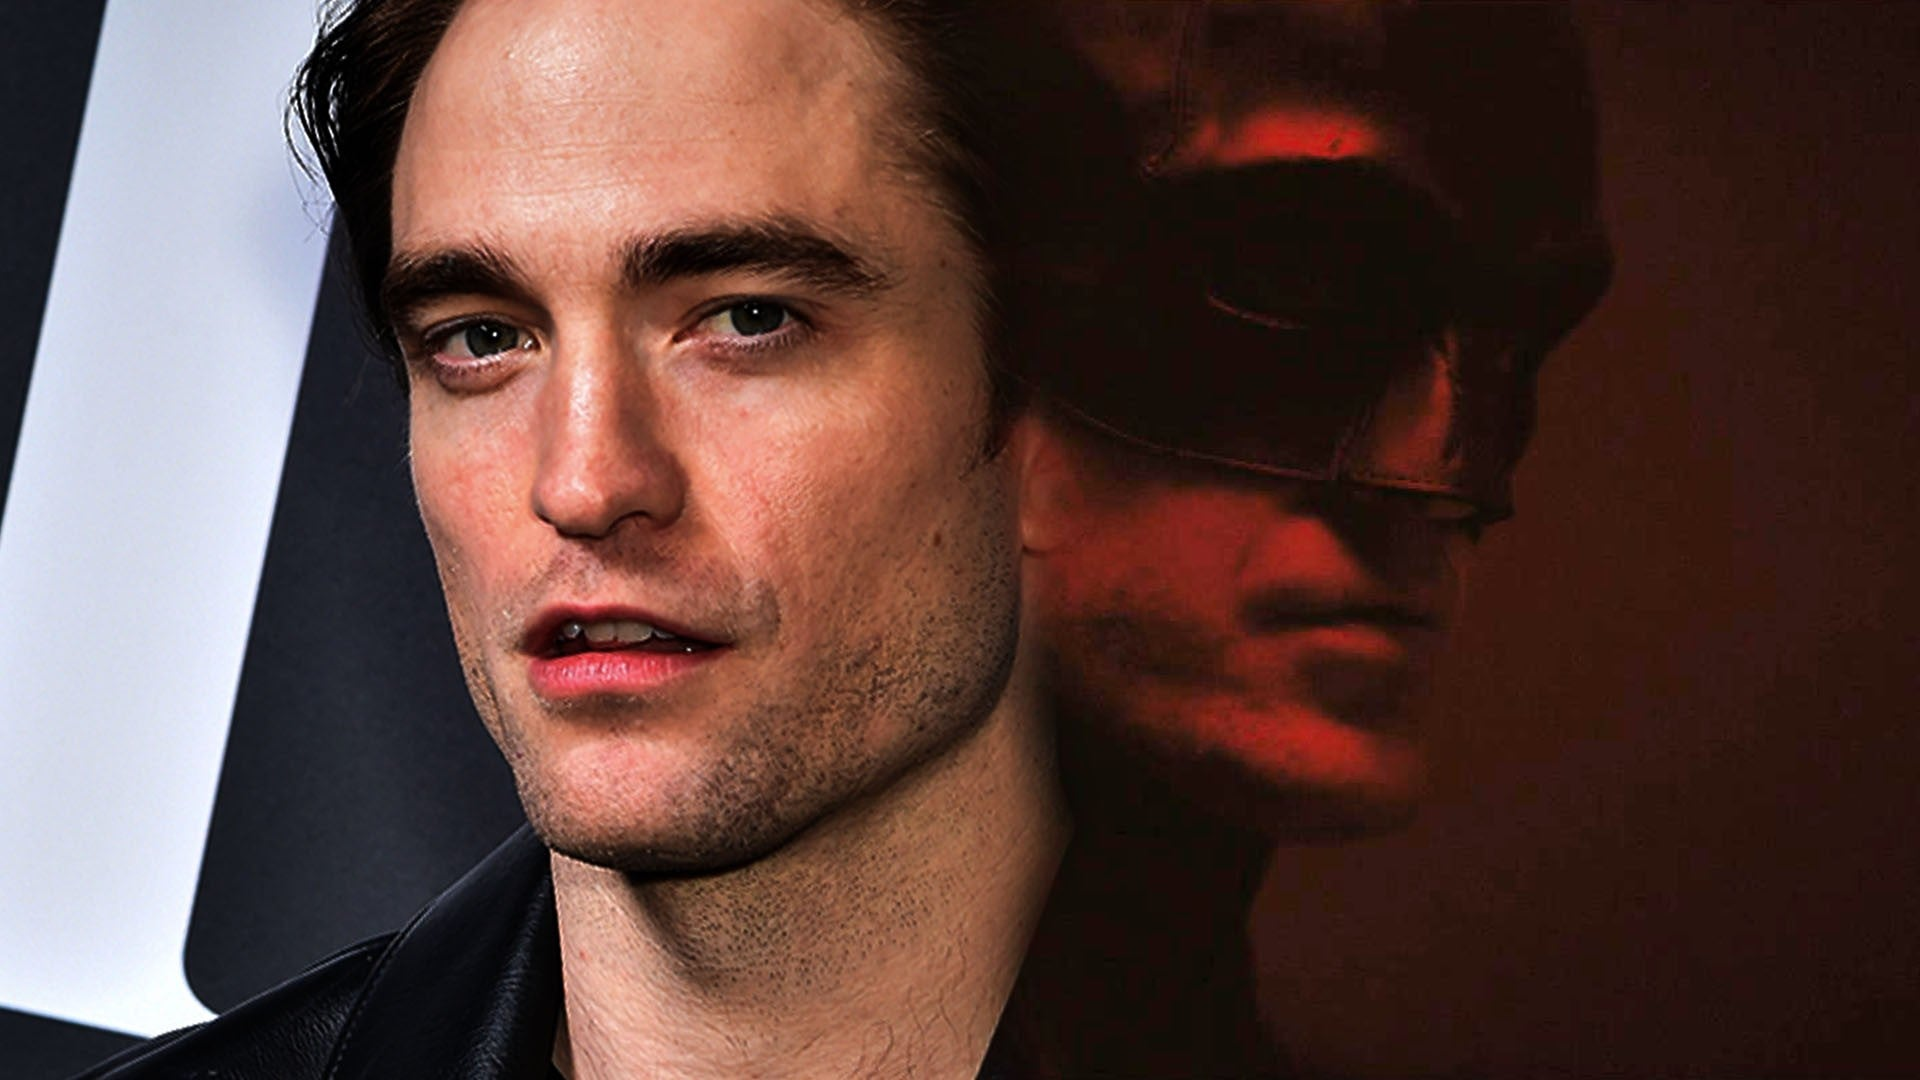 Fans are not Happy with Robert Pattinson's Batman Look